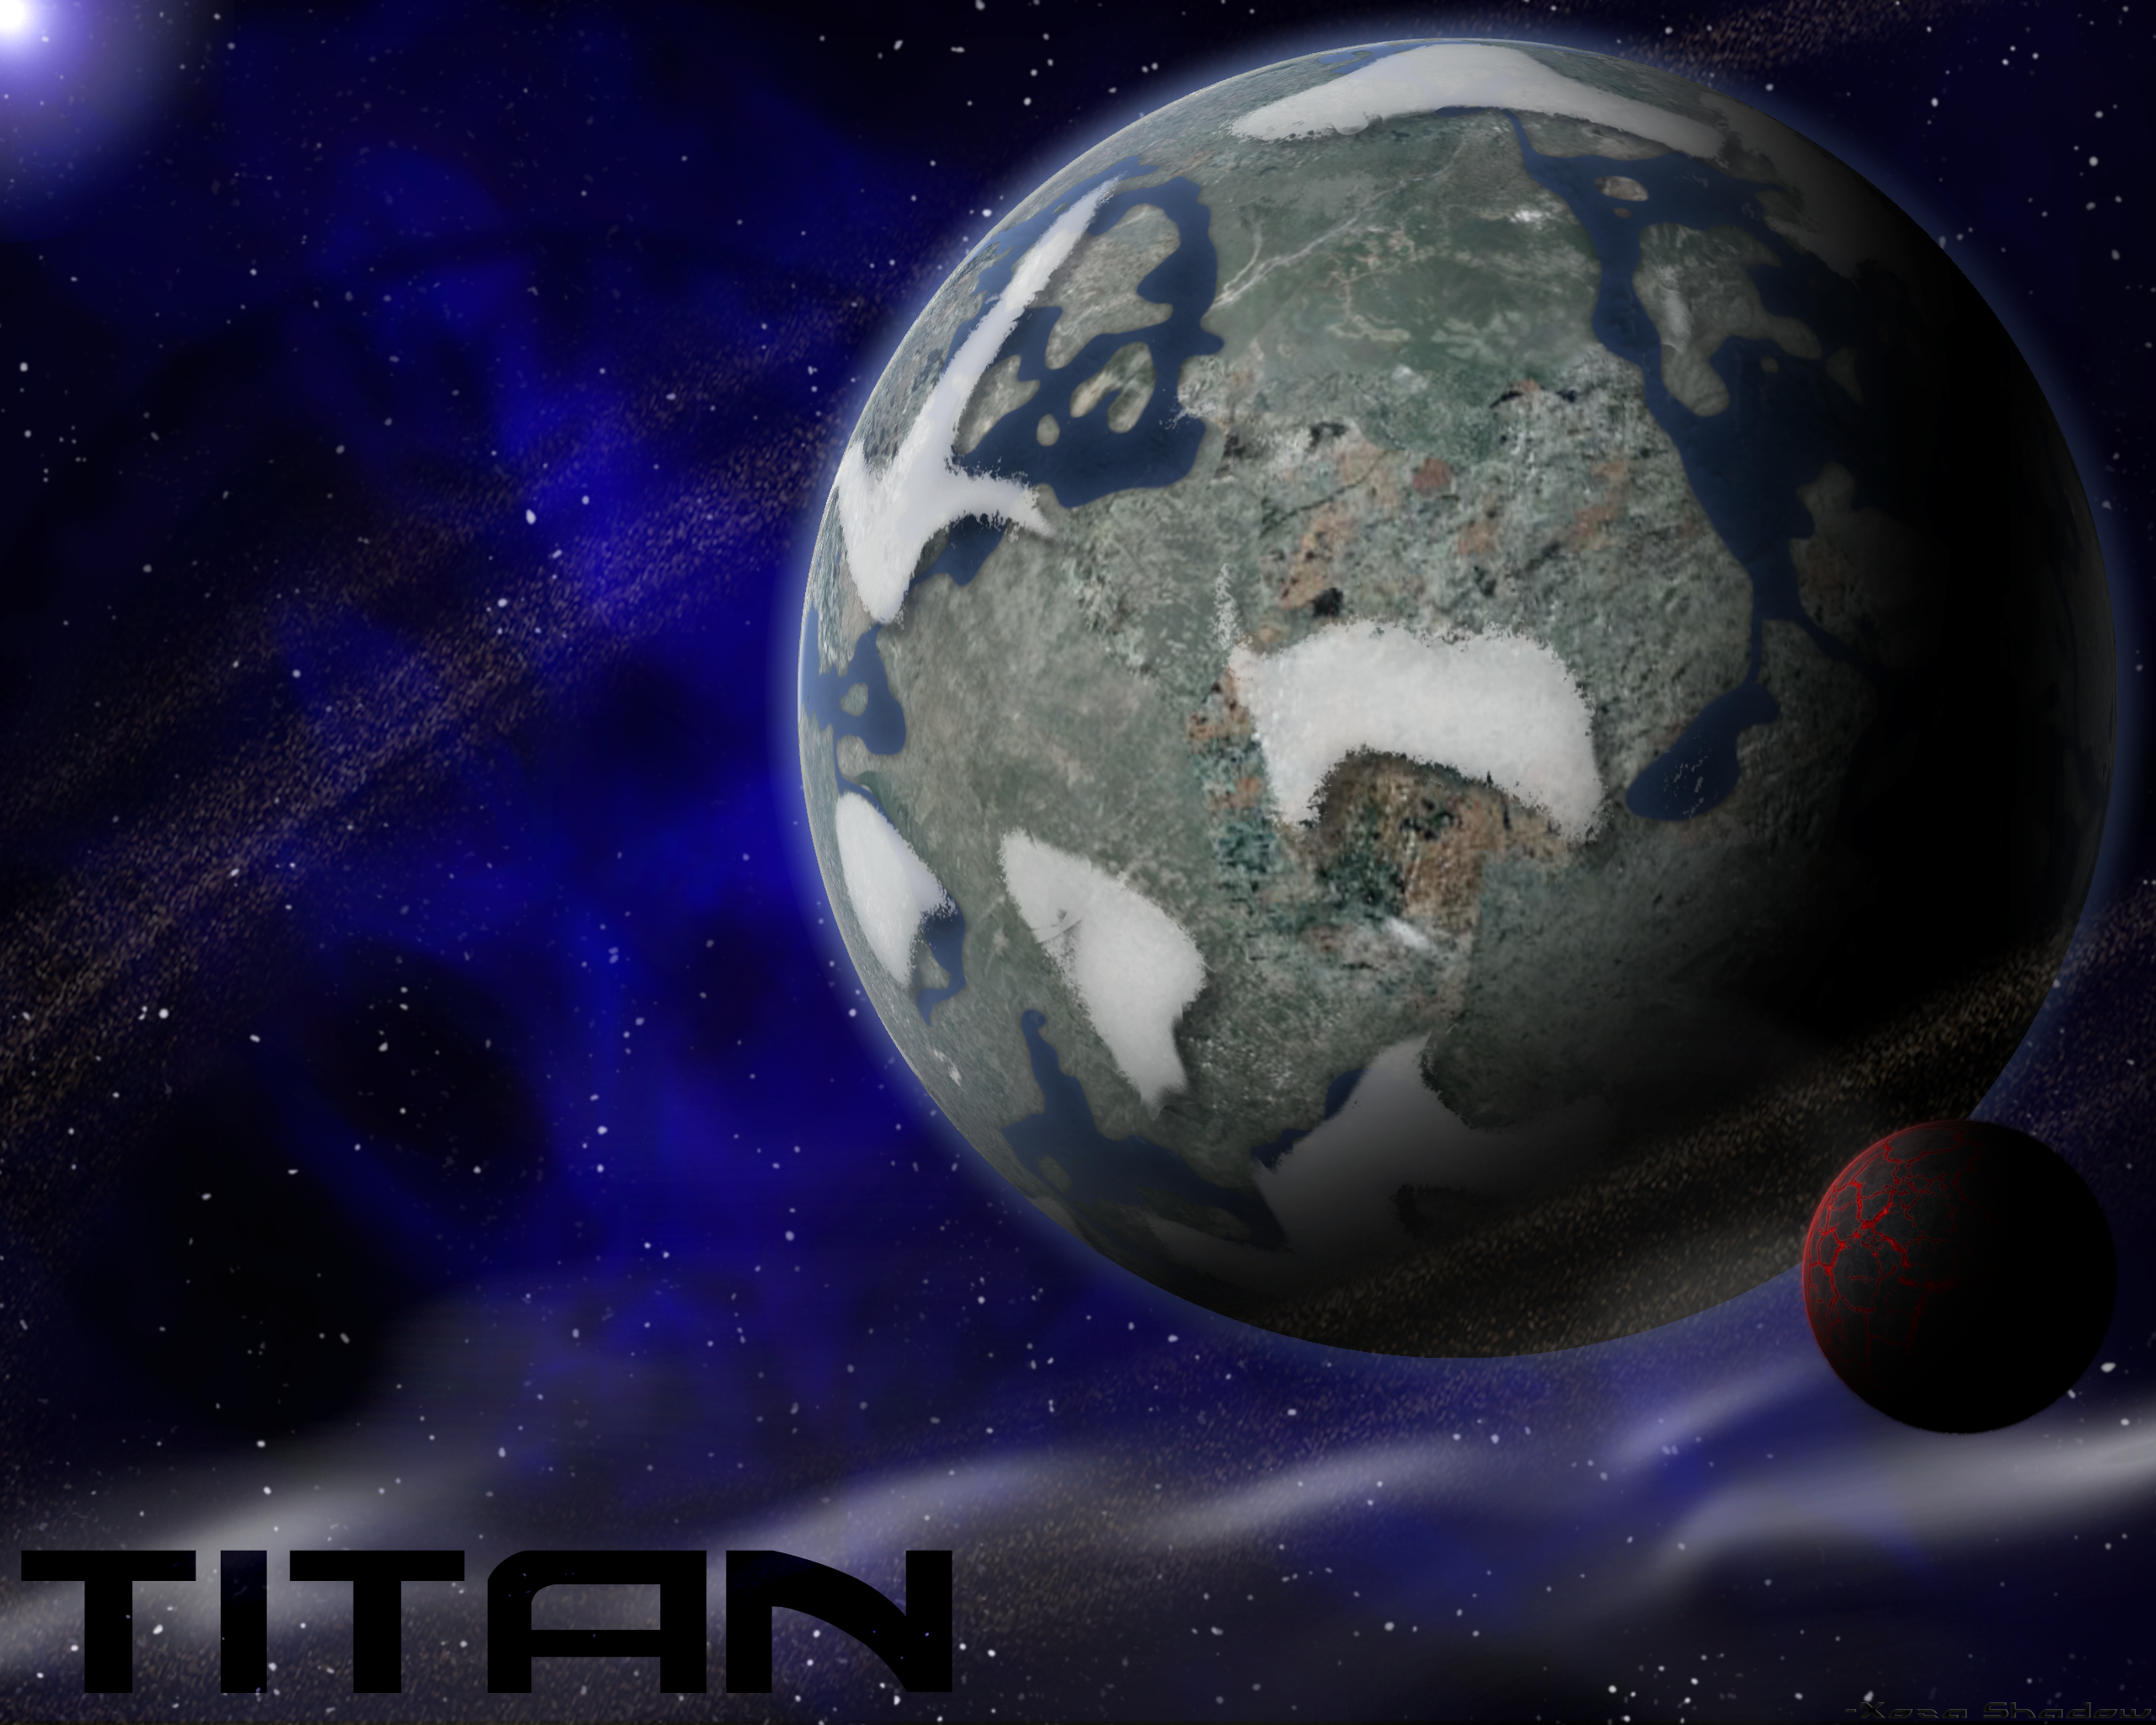 titan_space_wallpaper_by_xoza-d4p158u.pn